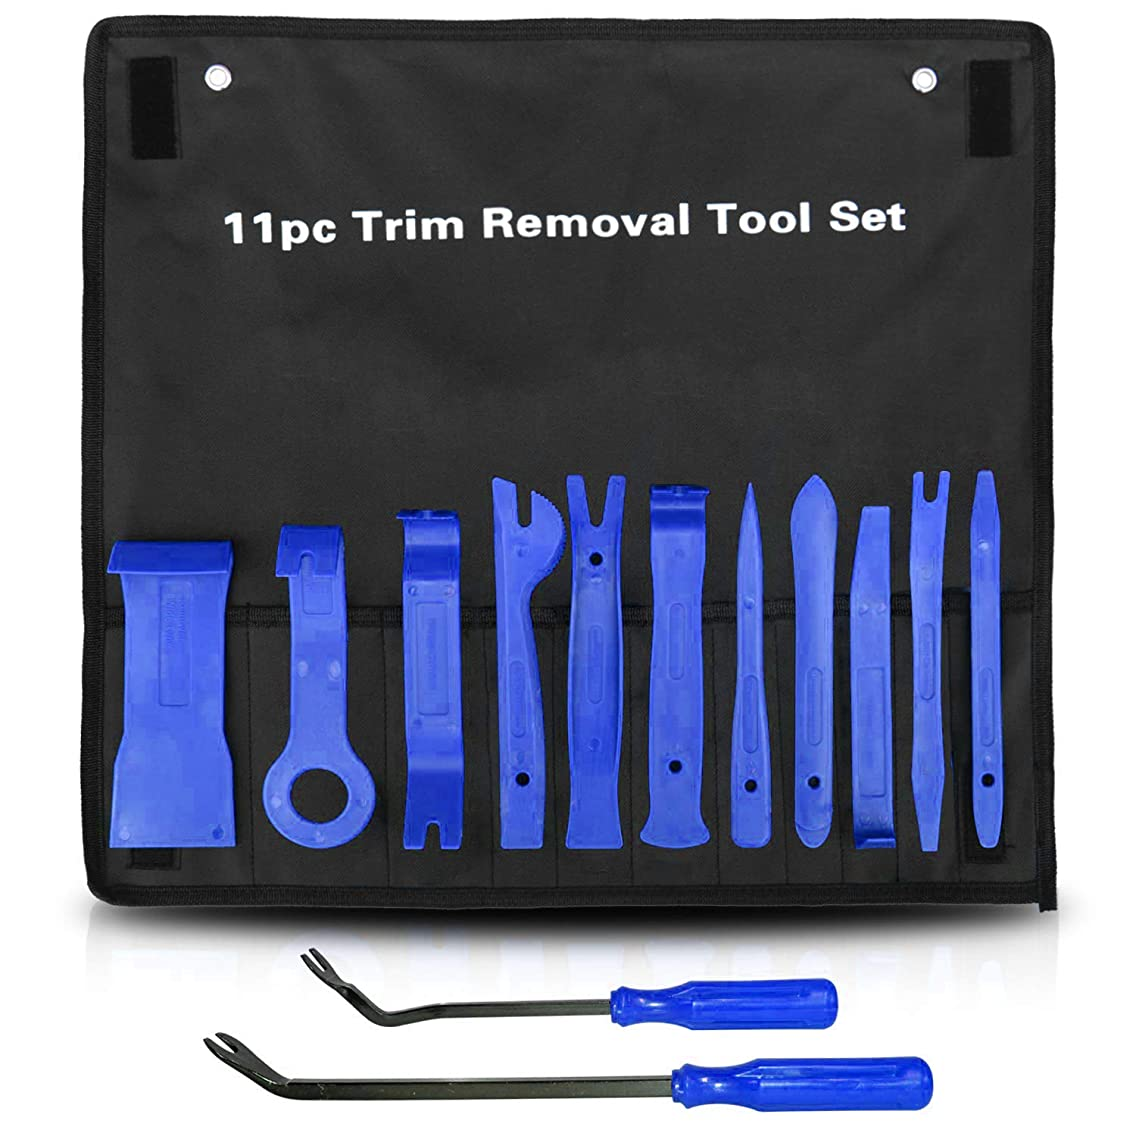 AiTrip 13 Pcs Auto Trim Removal Tool Set with Fastener Removers Strong Nylon Door Panel Tool Kit (Blue)